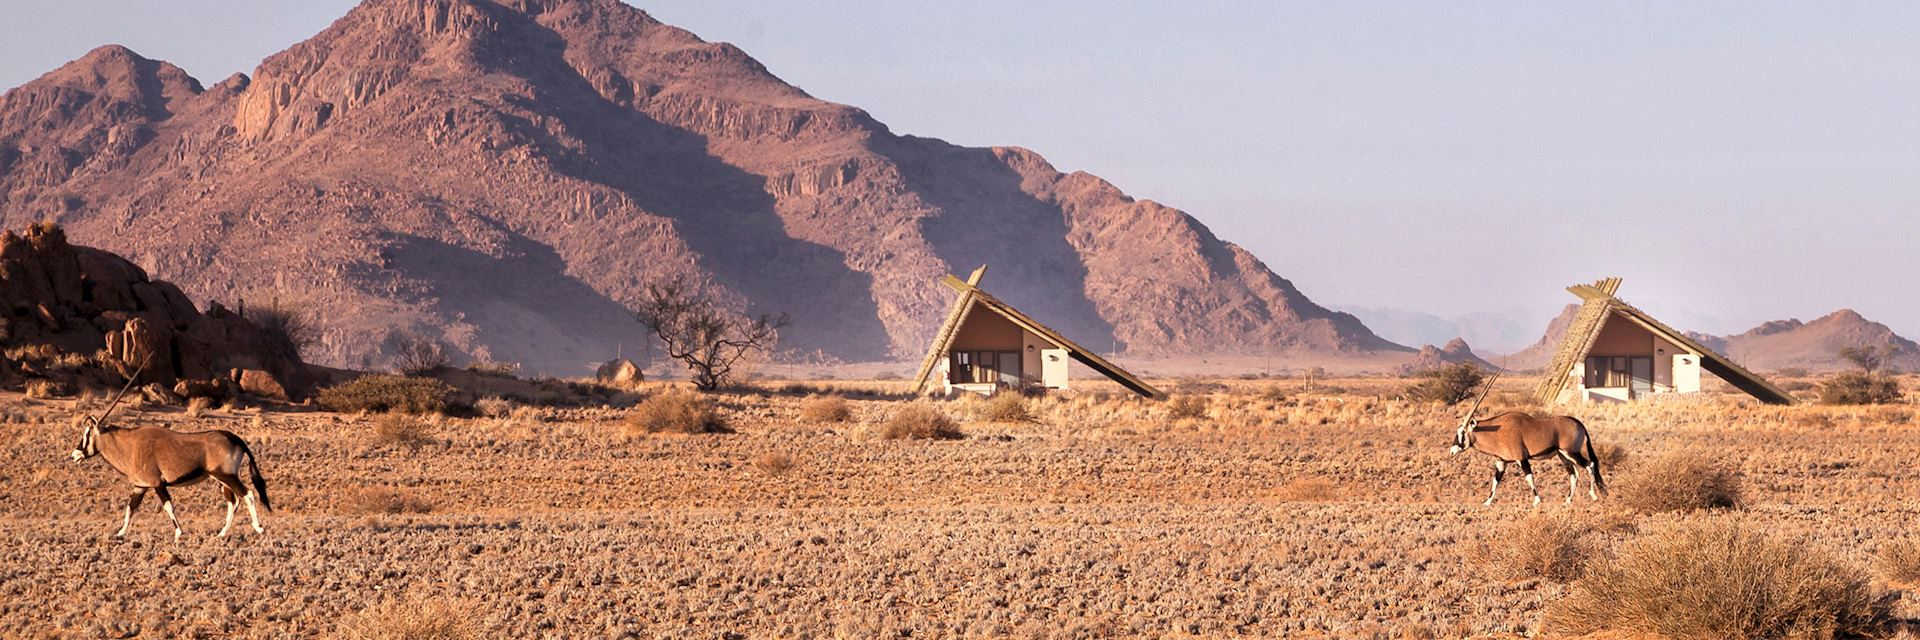 Oryx, Desert Quiver Camp, Namibia